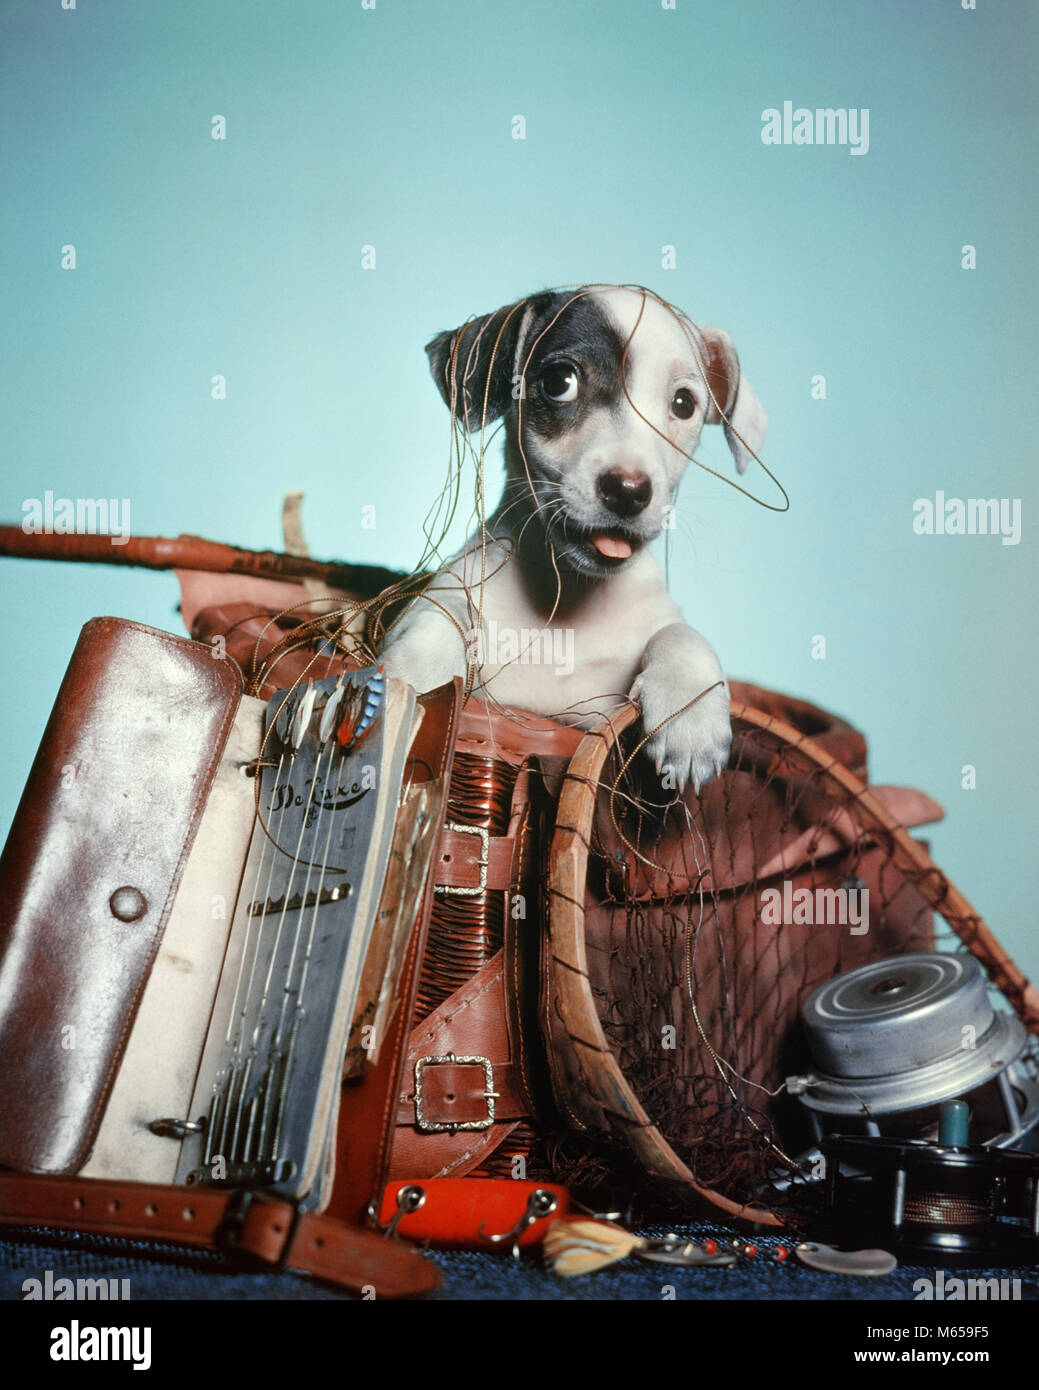 1950s FOX TERRIER PUPPY PEEKING OUT OF TANGLED MESS OF FISHING GEAR - kd58 HAR001 HARS OLD FASHIONED - Stock Image